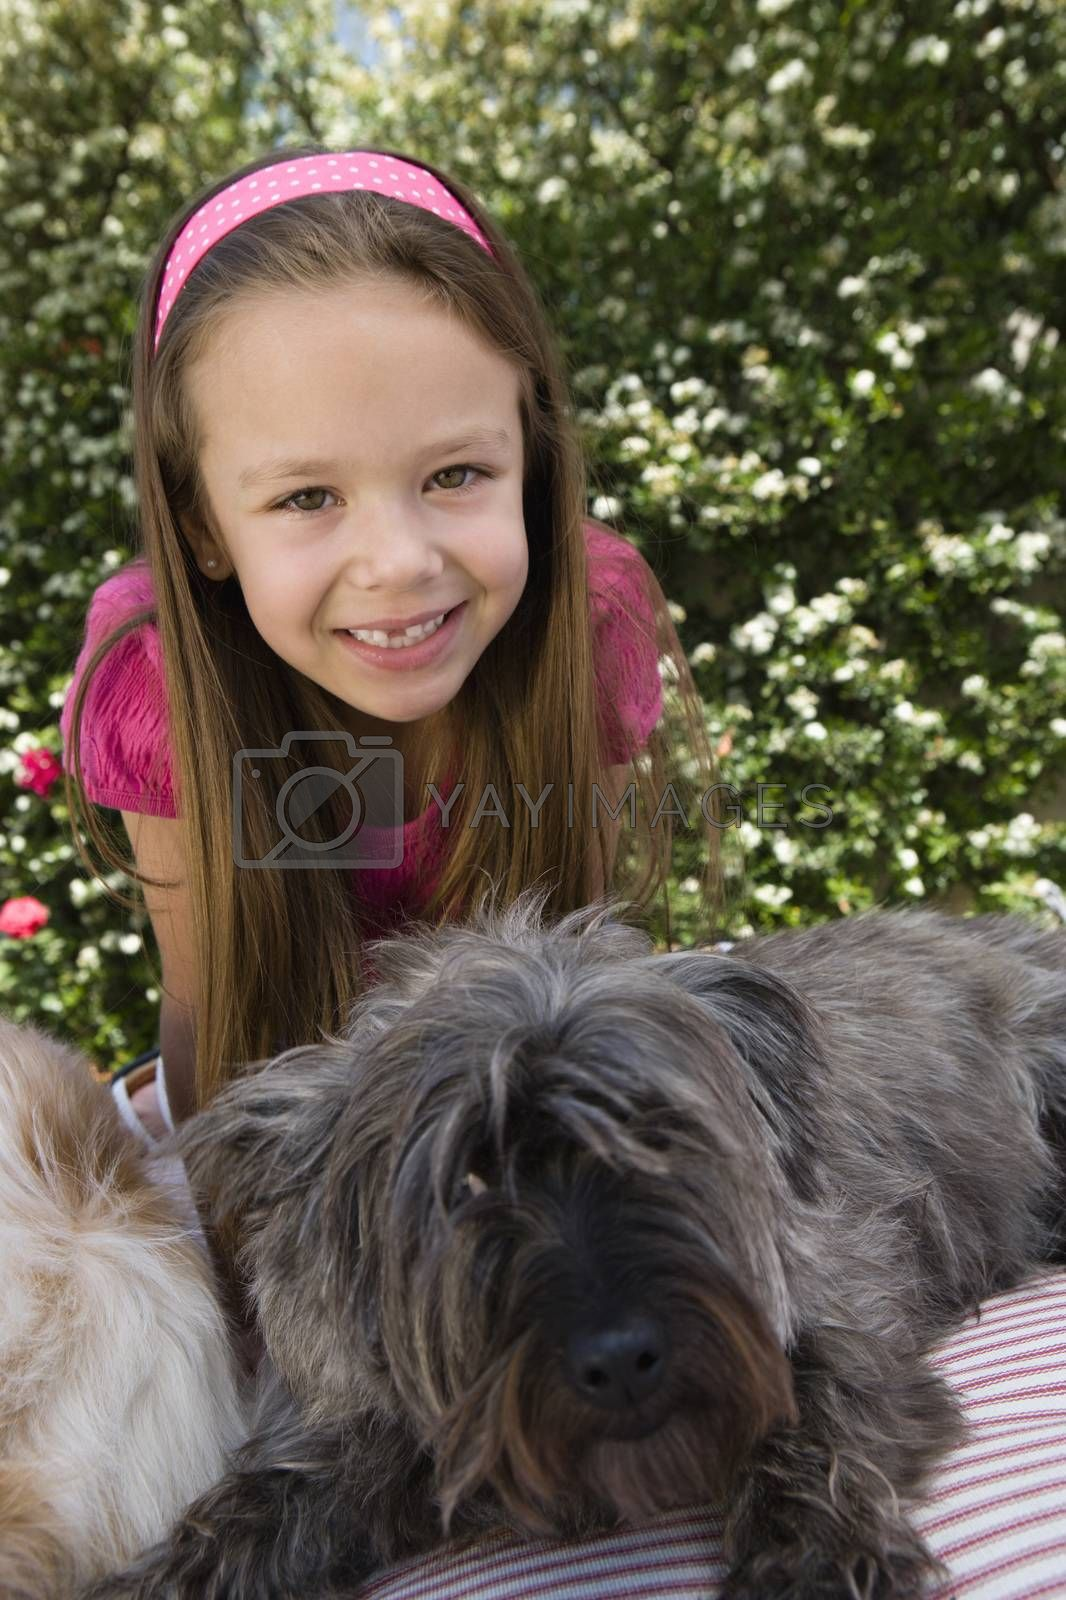 Little Girl with Pets